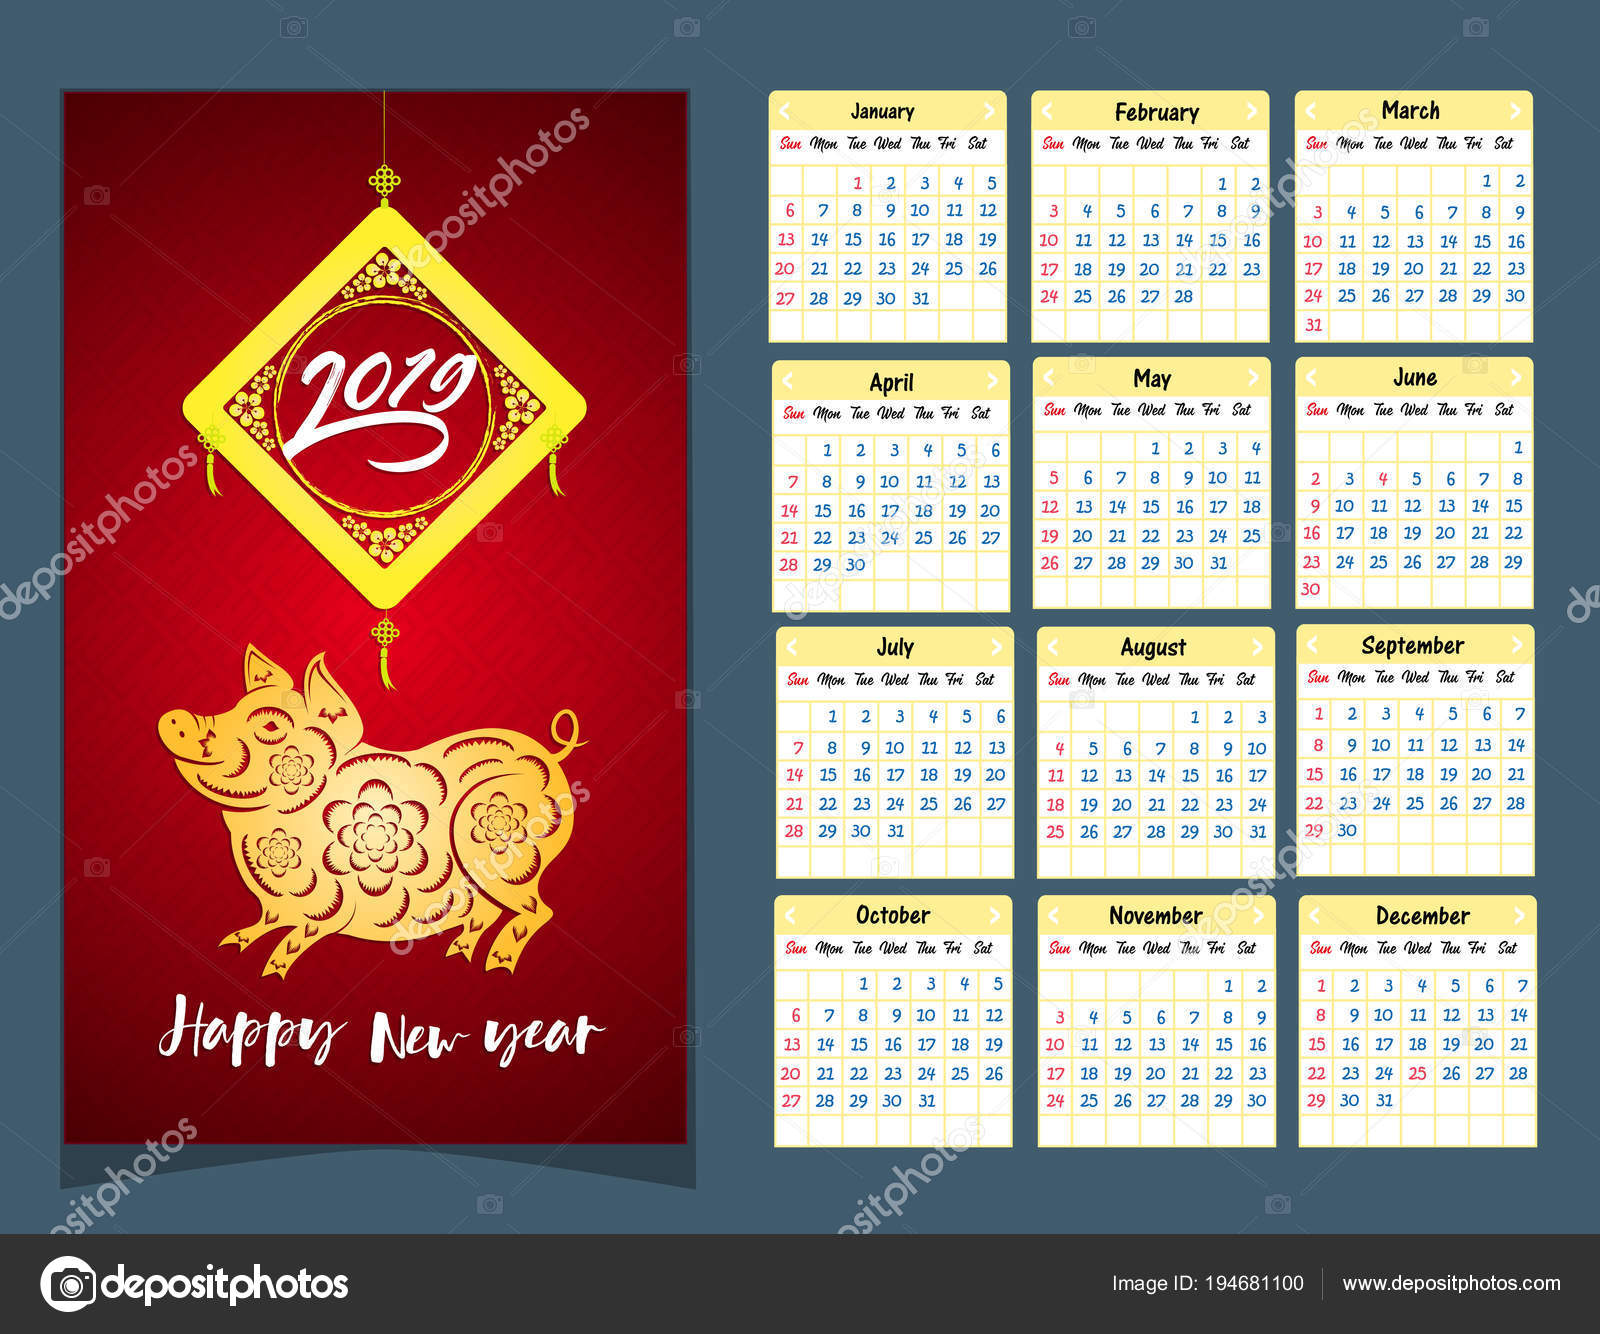 Year 2019 Lunar Calendar With Chinese Happy New Pig Stock